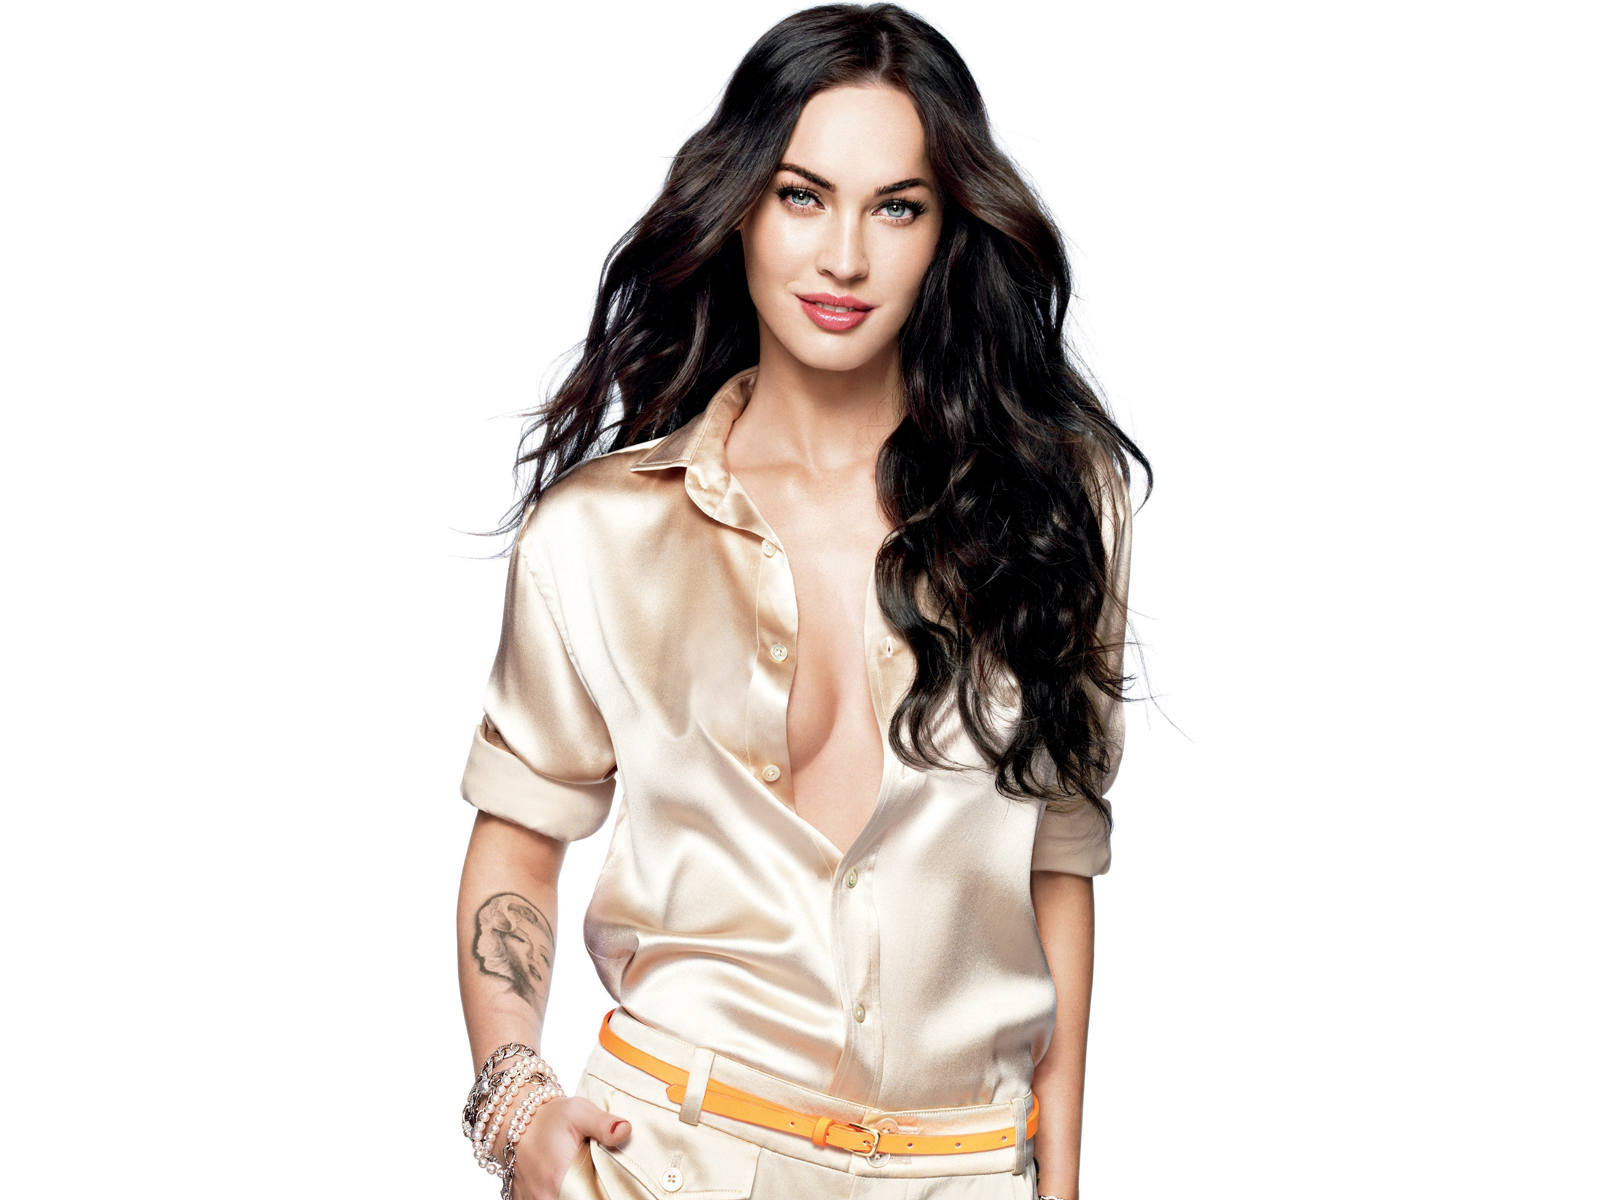 Megan Fox Wallpapers and Background Images